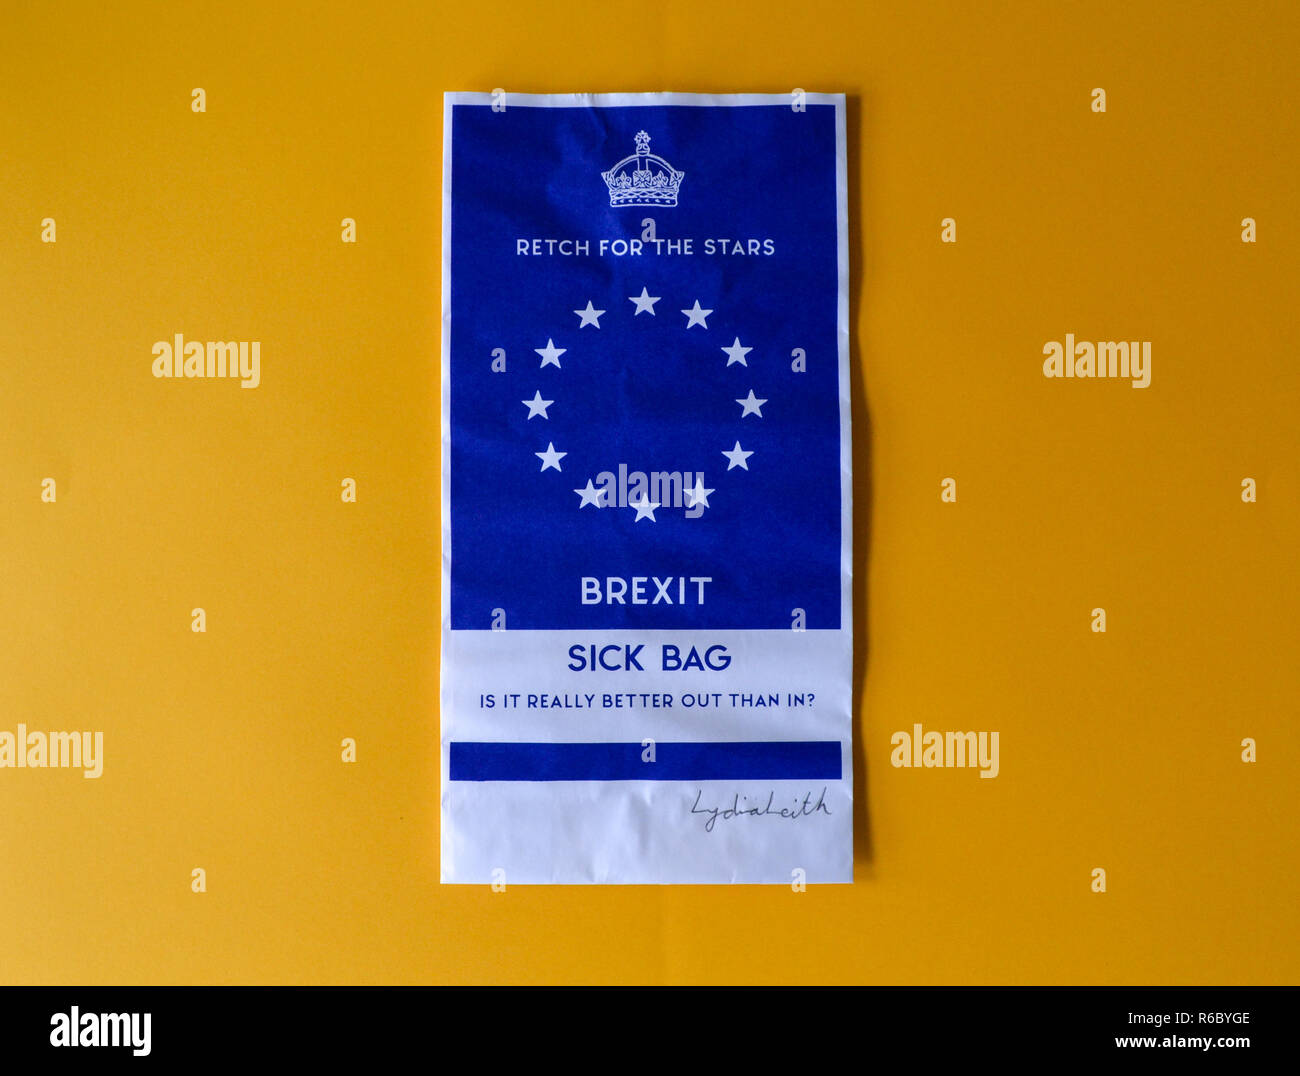 Brexit Sick Bag - Stock Image